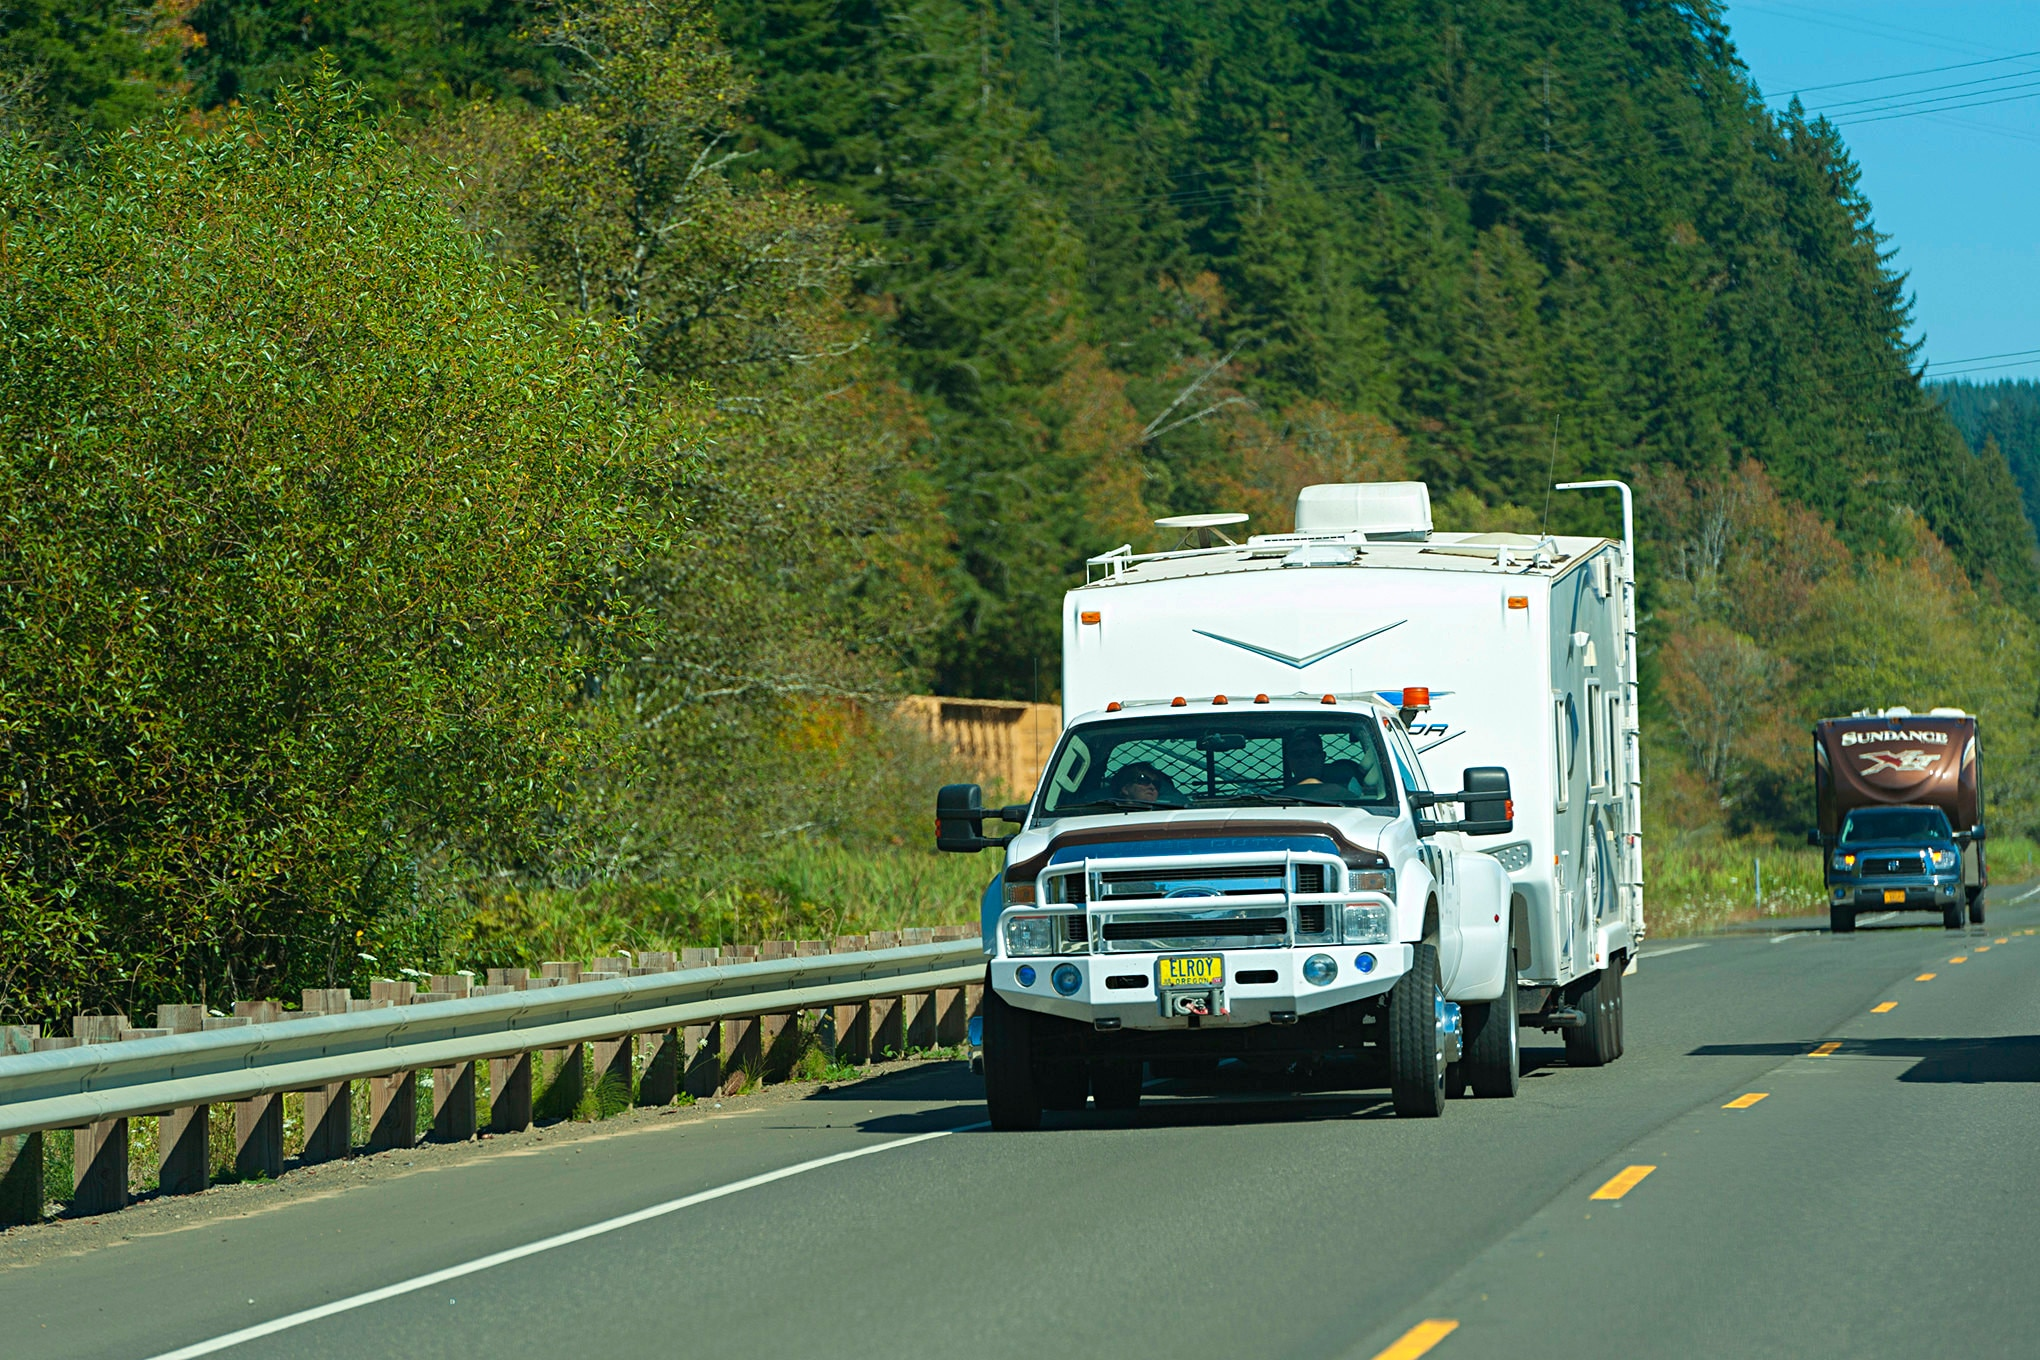 Tow Ratings and the Law: Discussing the Limits of Trailer Size